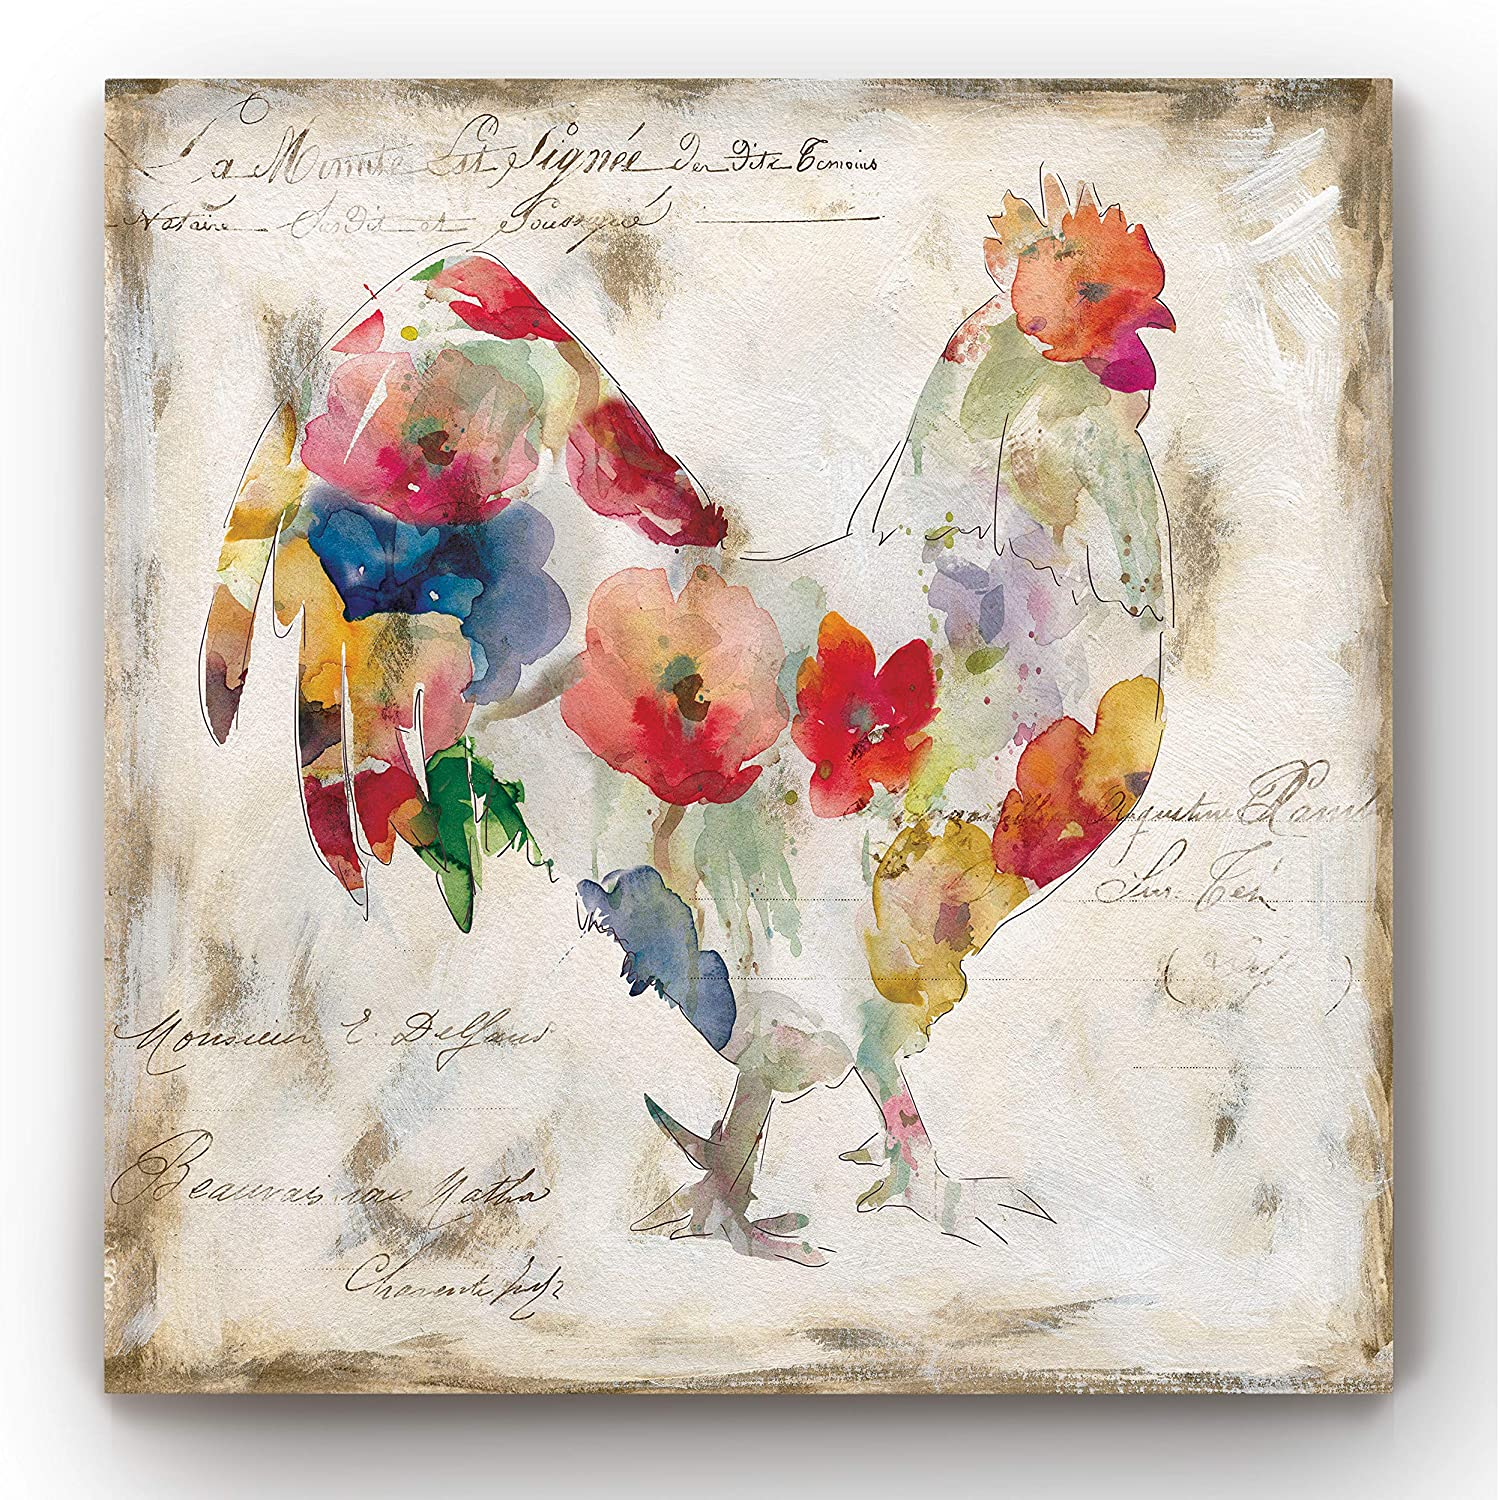 Renditions Gallery Flowered Rooster Wall Art, Chicken & Farm Artwork, Multicolored Flower Design, Country Barn Decor, Premium Gallery Wrapped Canvas, Ready to Hang, 24 in H x 24 in W, Made in America